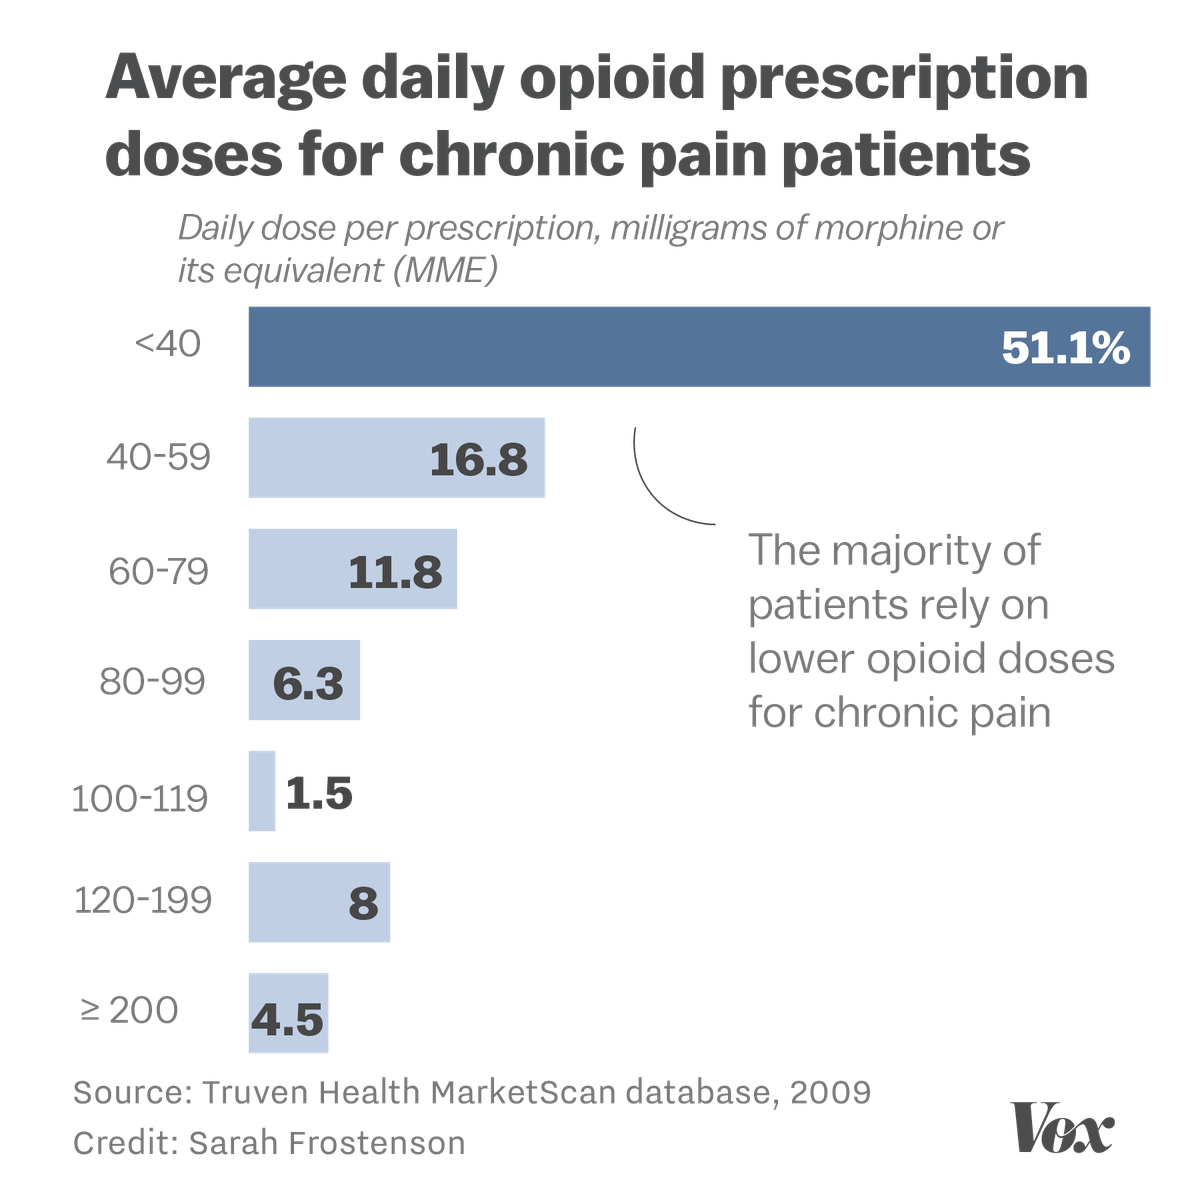 Chart showing the average daily opioid prescription doses for chronic pain patients